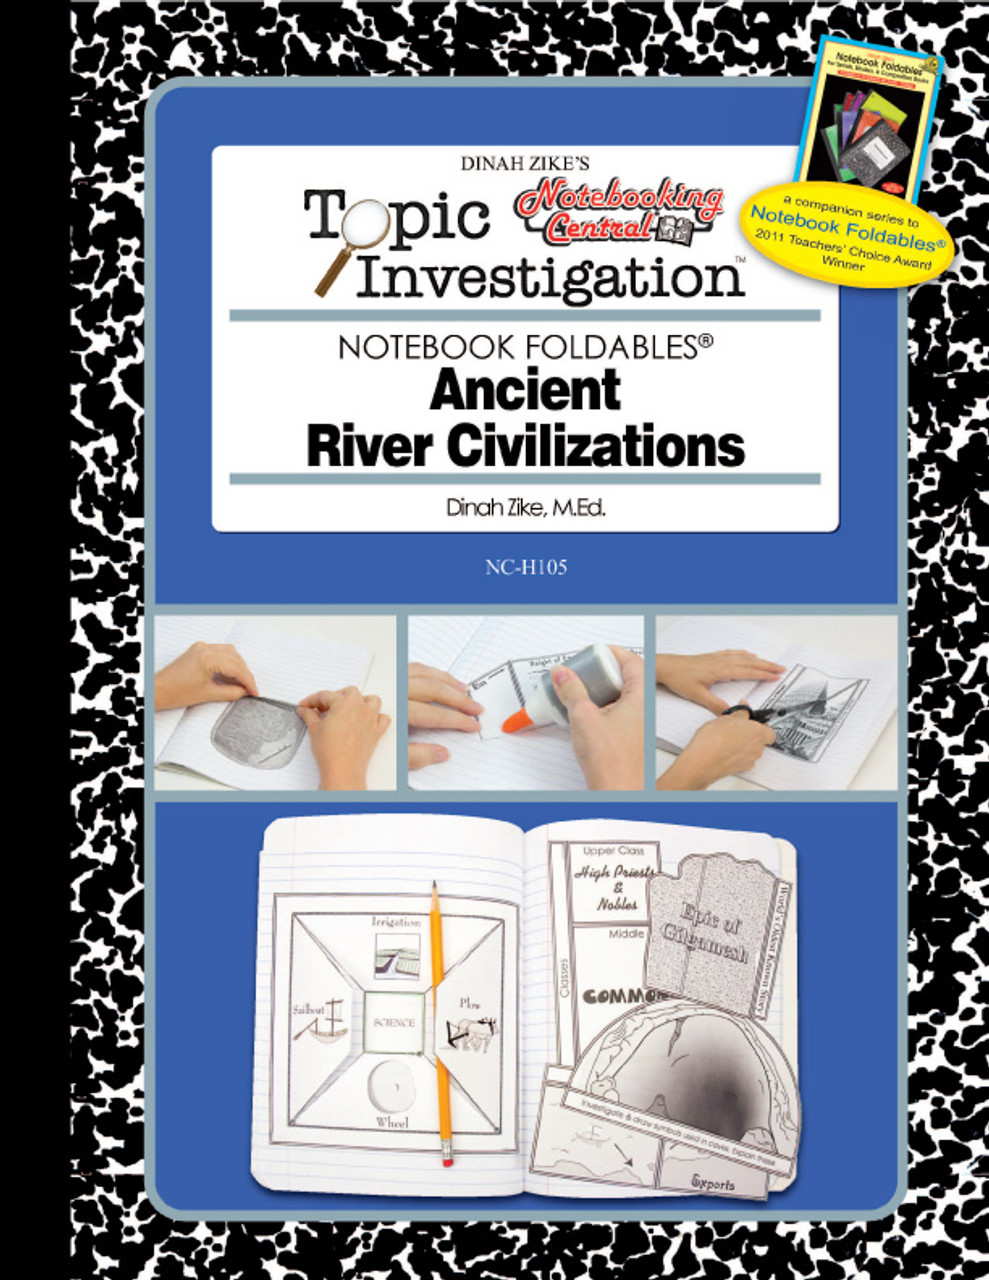 Nc ancient river civilizations oct16 world history 1 - ancient civilizations (river) (page 02)